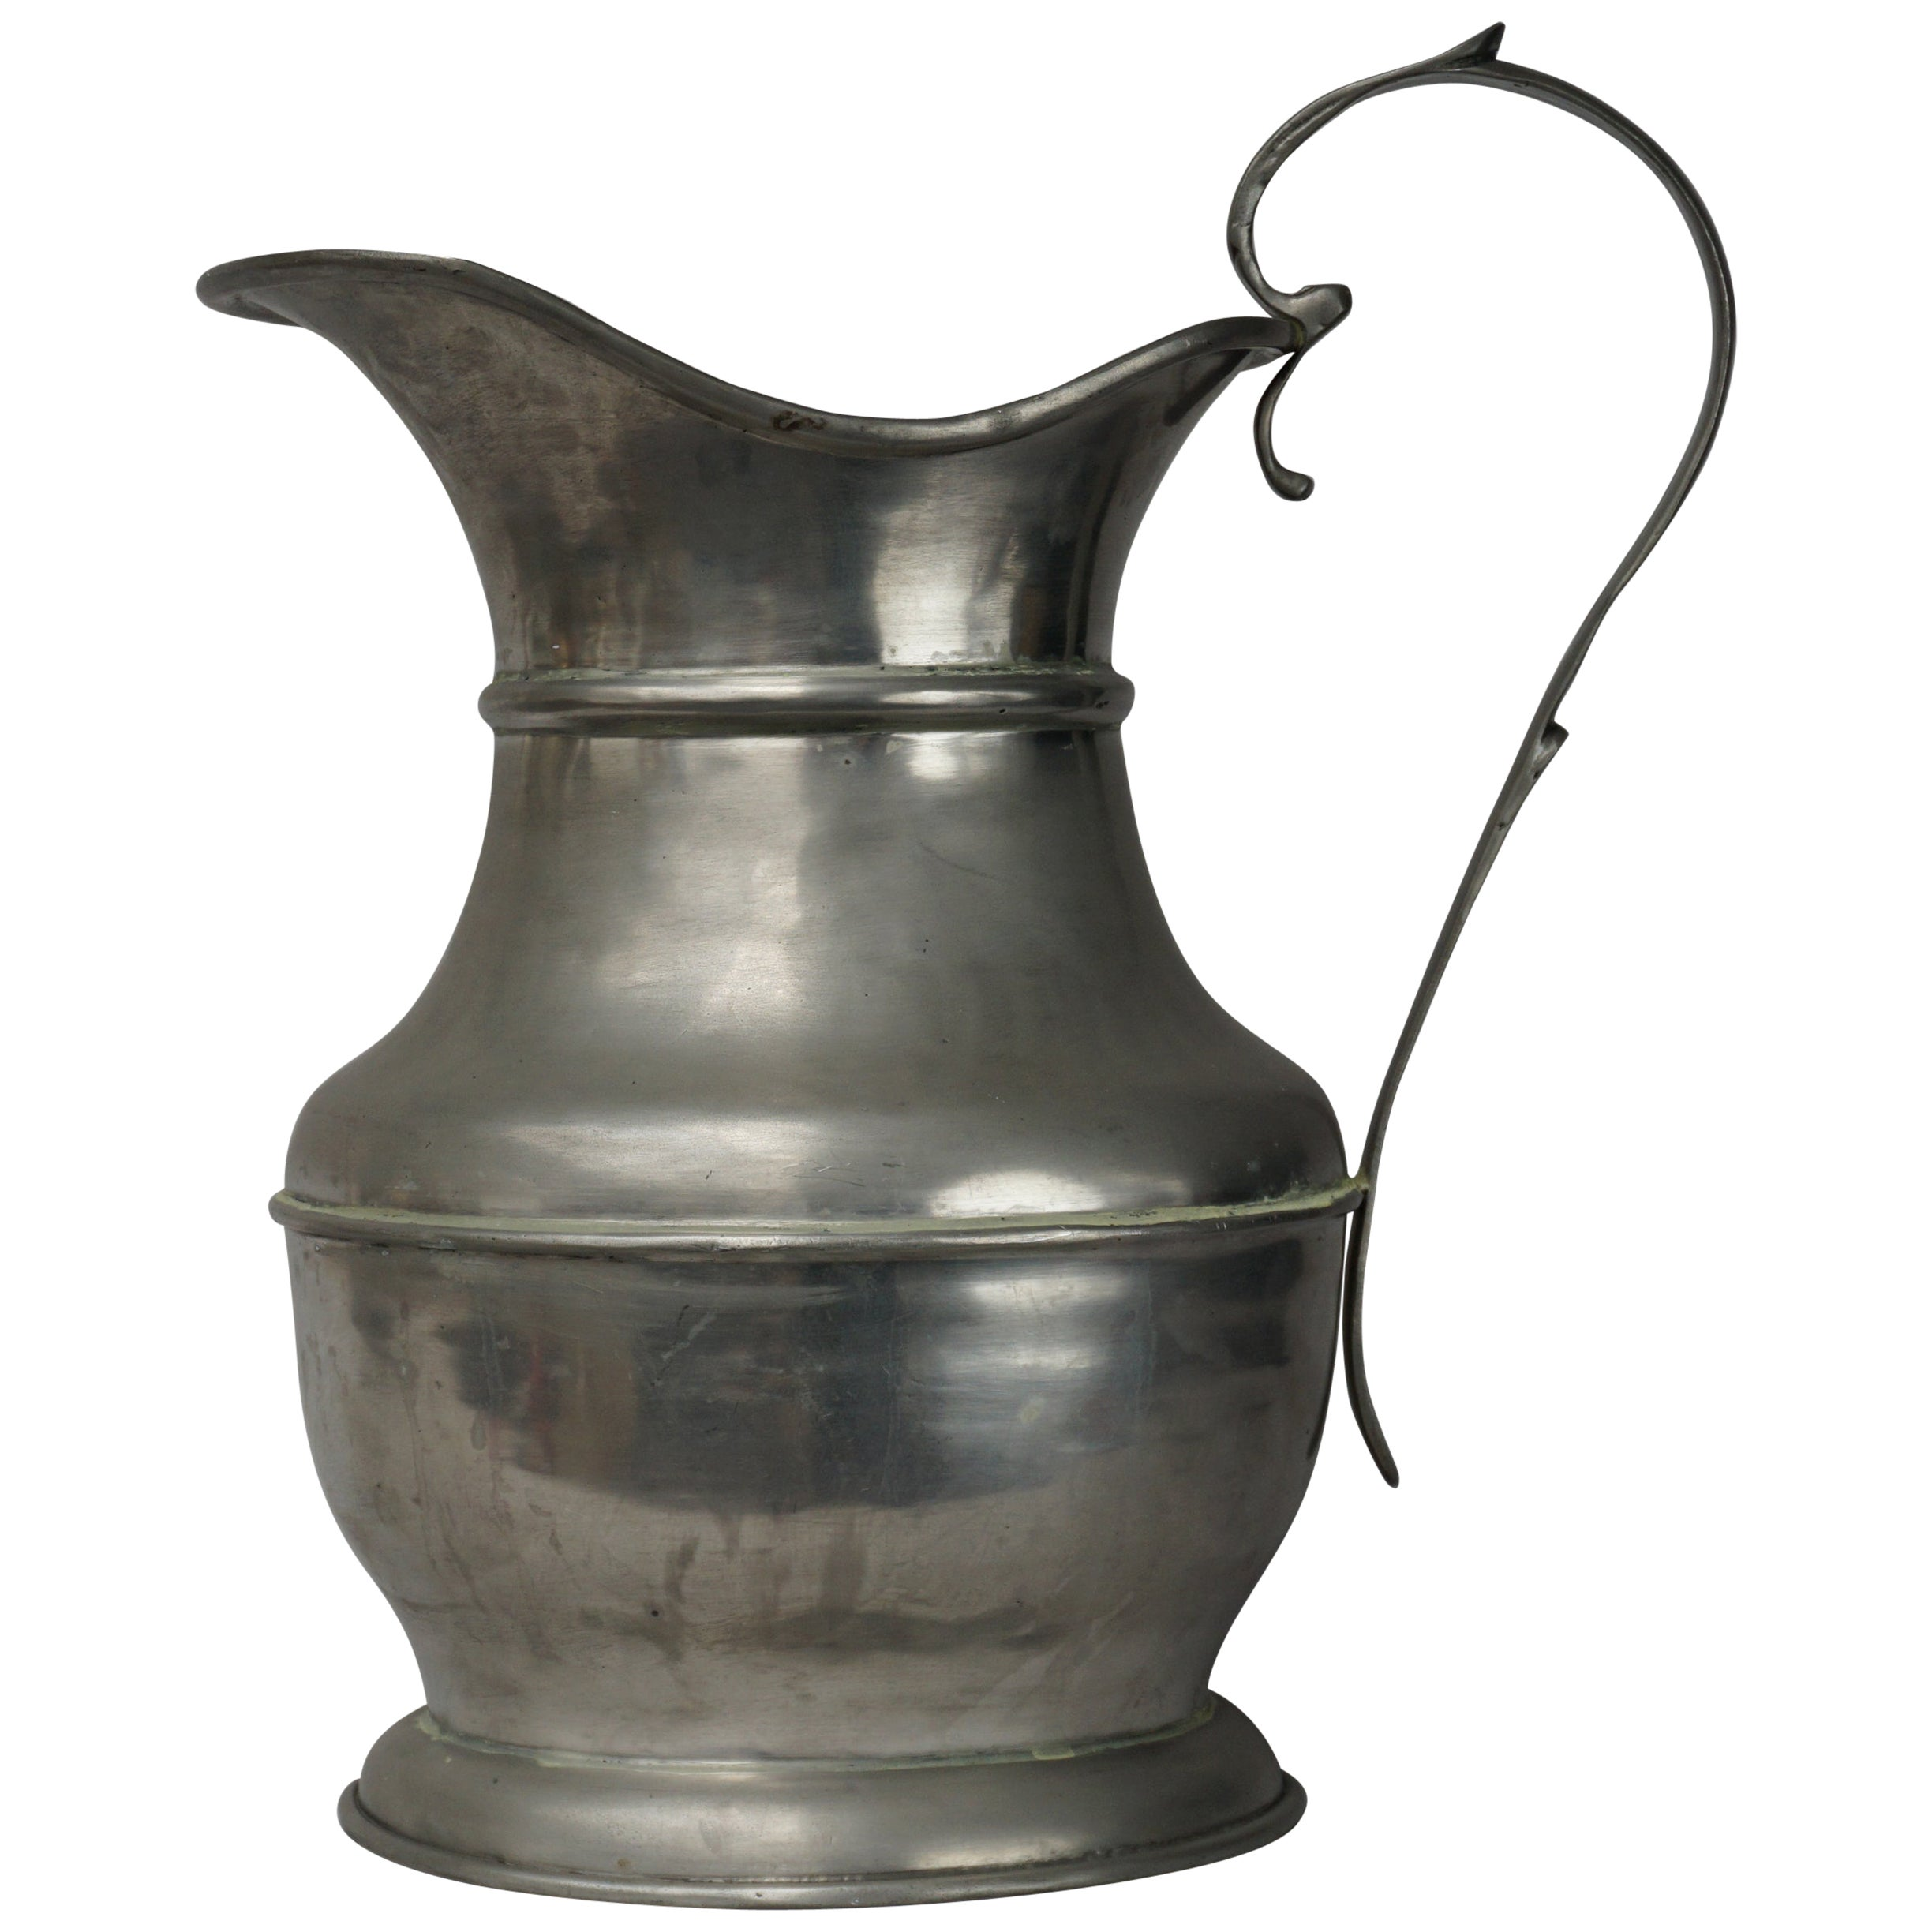 Exceptionally Large 19th Century Dutch Tin Water Ewer, Pitcher or Jug